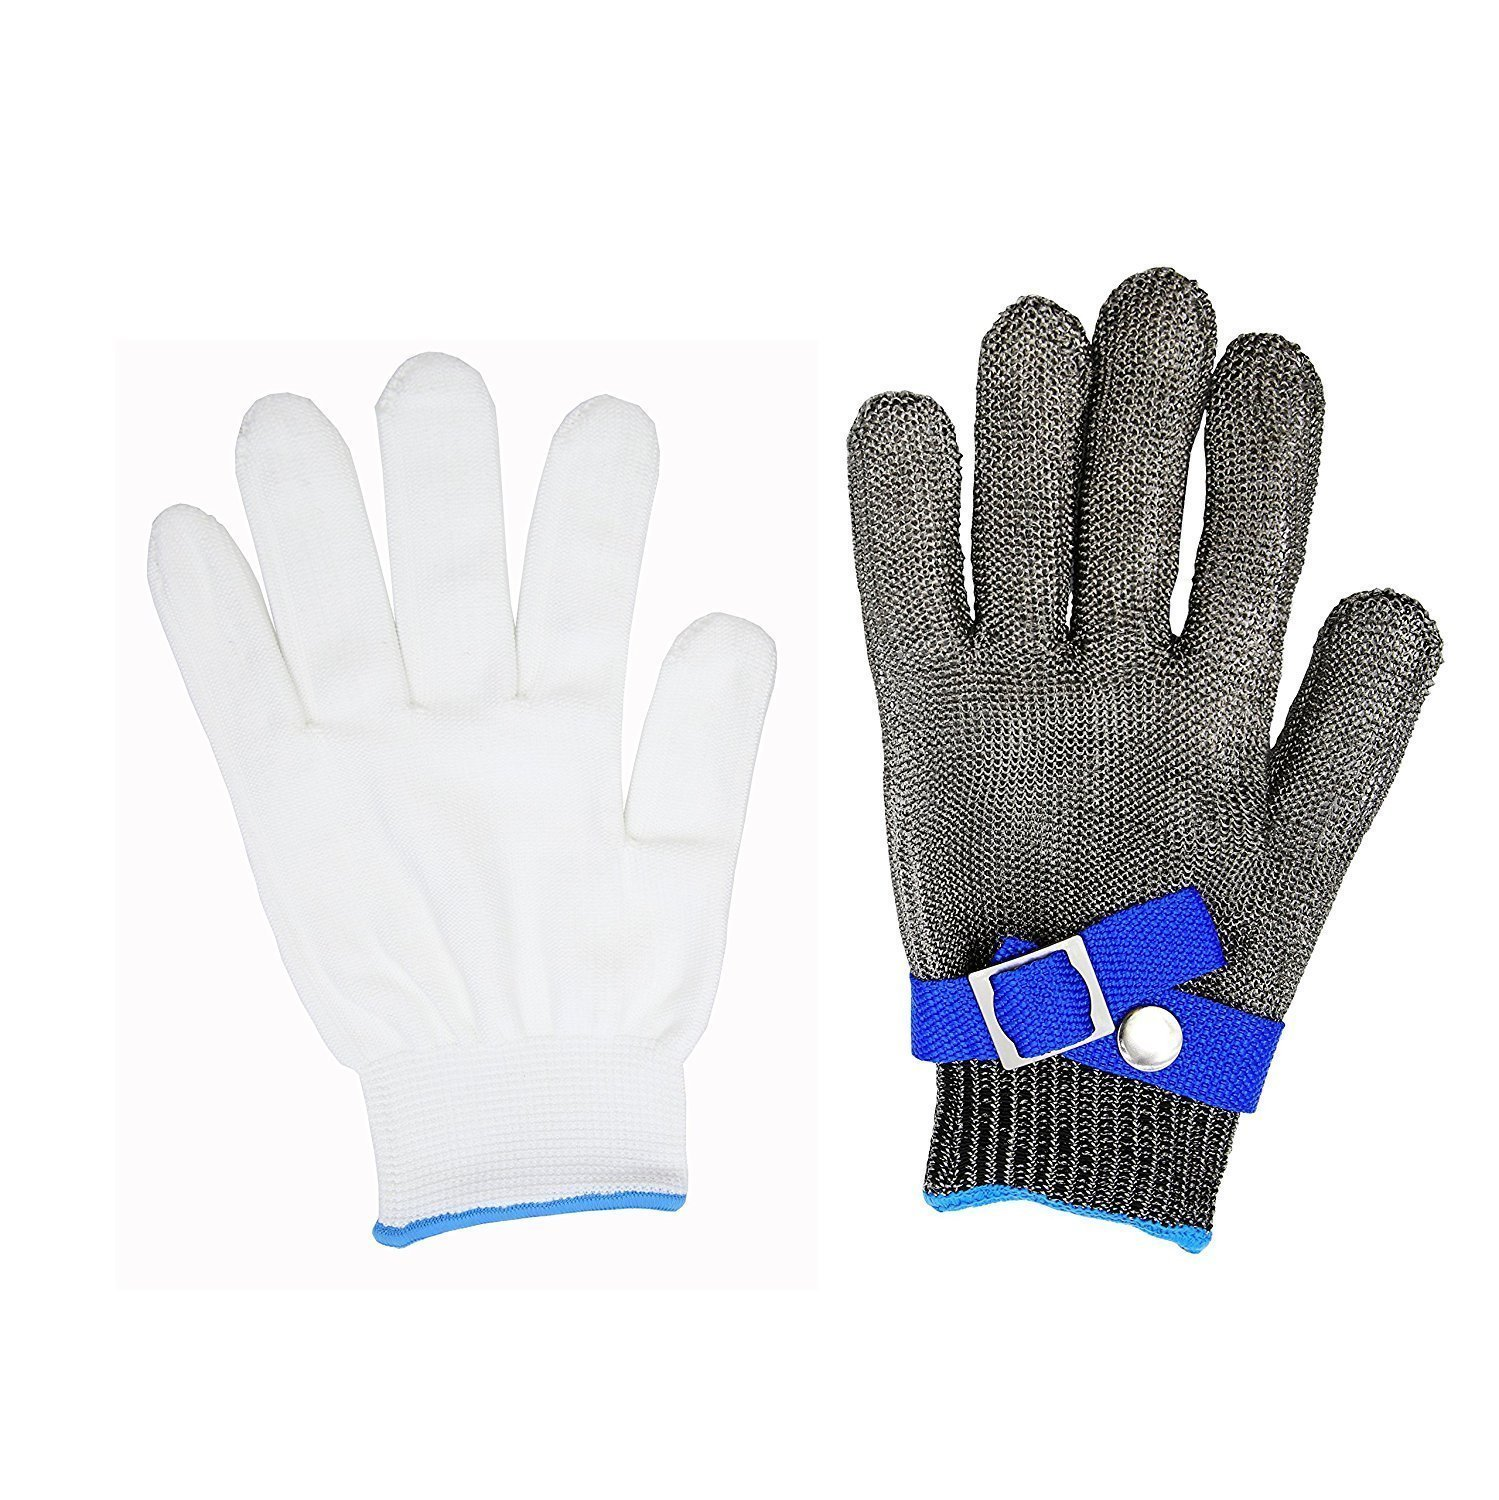 Size L Safety Cut Proof Stab Resistant Glove,Stainless Steel Metal Mesh Butcher Glove, High Performance Level 5 Protection Glove